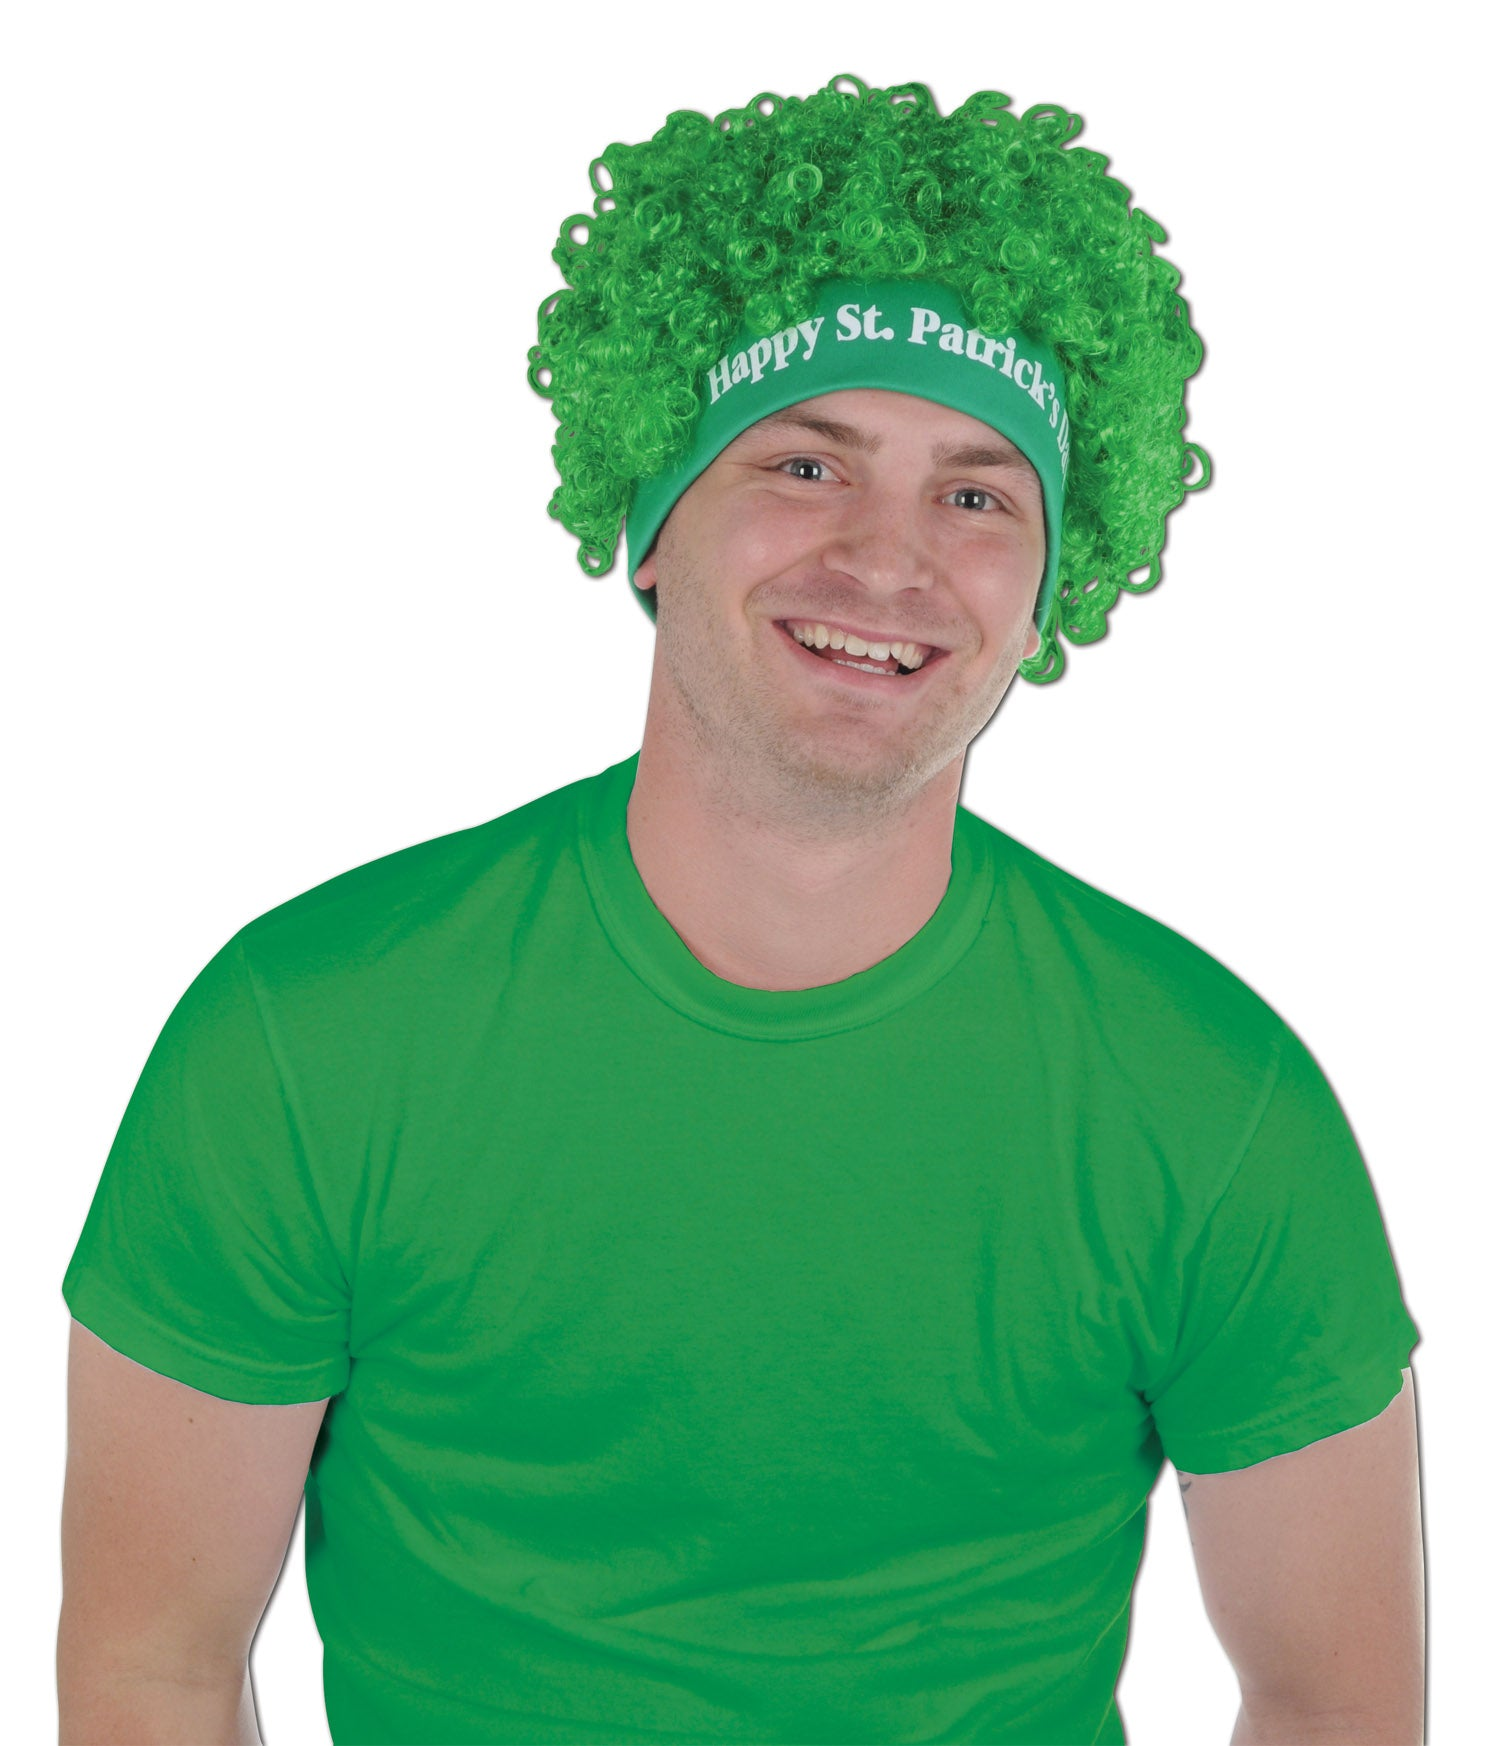 Happy St Patrick's Day Wig by Beistle - St. Patricks Day Theme Decorations